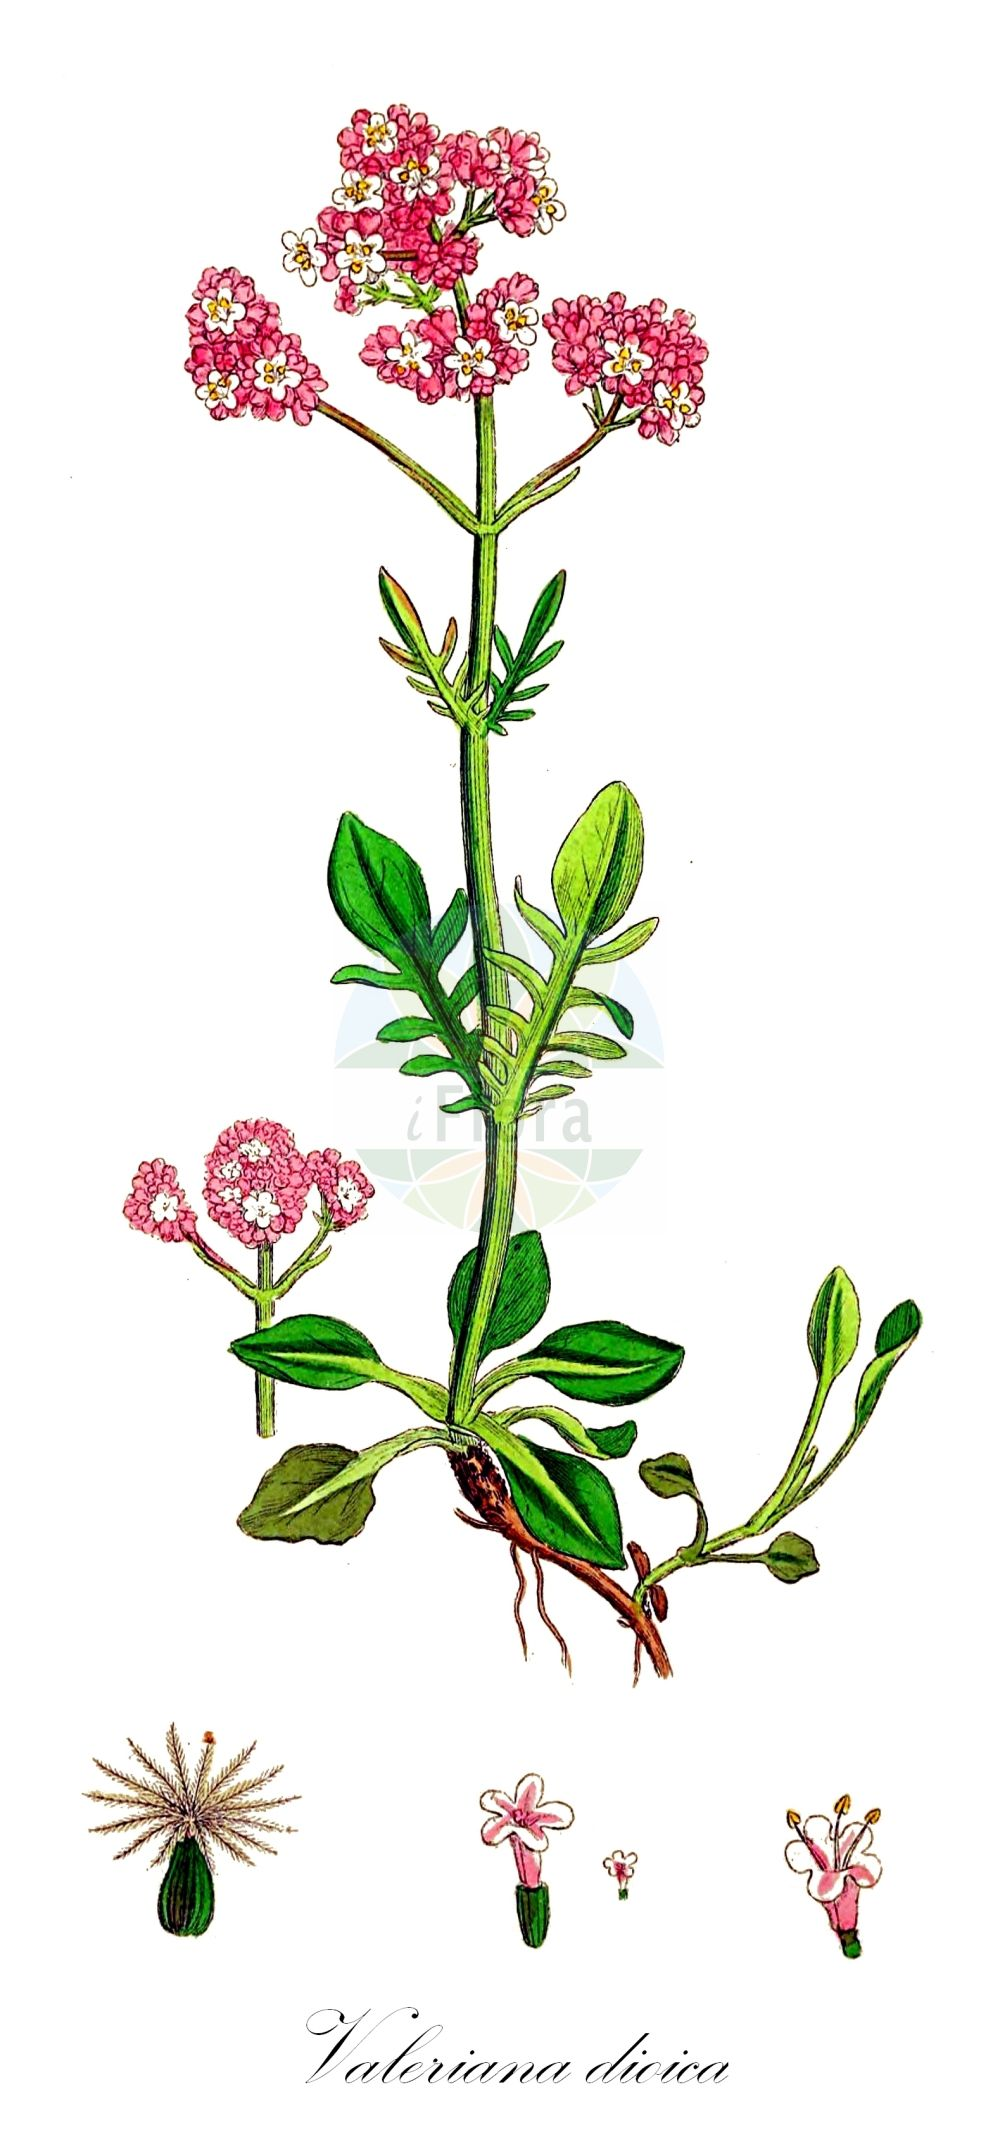 Historische Abbildung von Valeriana dioica (Sumpf-Baldrian - Marsh Valerian). Das Bild zeigt Blatt, Bluete, Frucht und Same. ---- Historical Drawing of Valeriana dioica (Sumpf-Baldrian - Marsh Valerian).The image is showing leaf, flower, fruit and seed.(Valeriana dioica,Sumpf-Baldrian,Marsh Valerian,Lesser Valerian,Small Wild Valerian,Valeriana,Baldrian,Valerian,Caprifoliaceae,Geissblattgewaechse,Honeysuckle family,Blatt,Bluete,Frucht,Same,leaf,flower,fruit,seed,Sowerby (1790-1813))